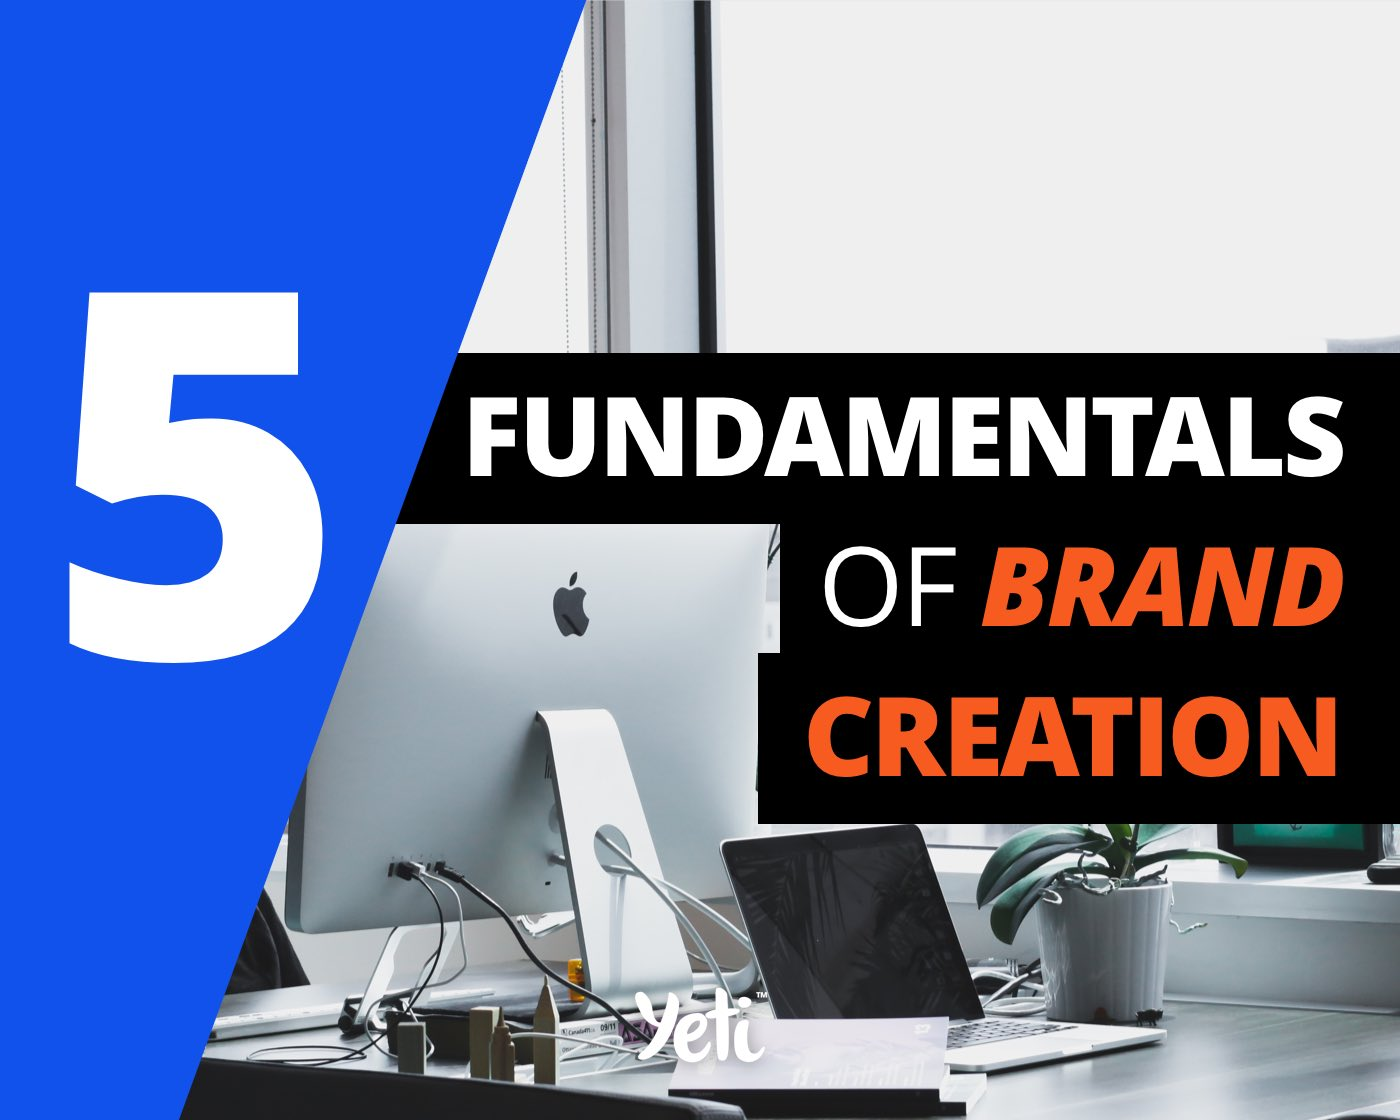 5 fundamentals of brand creation